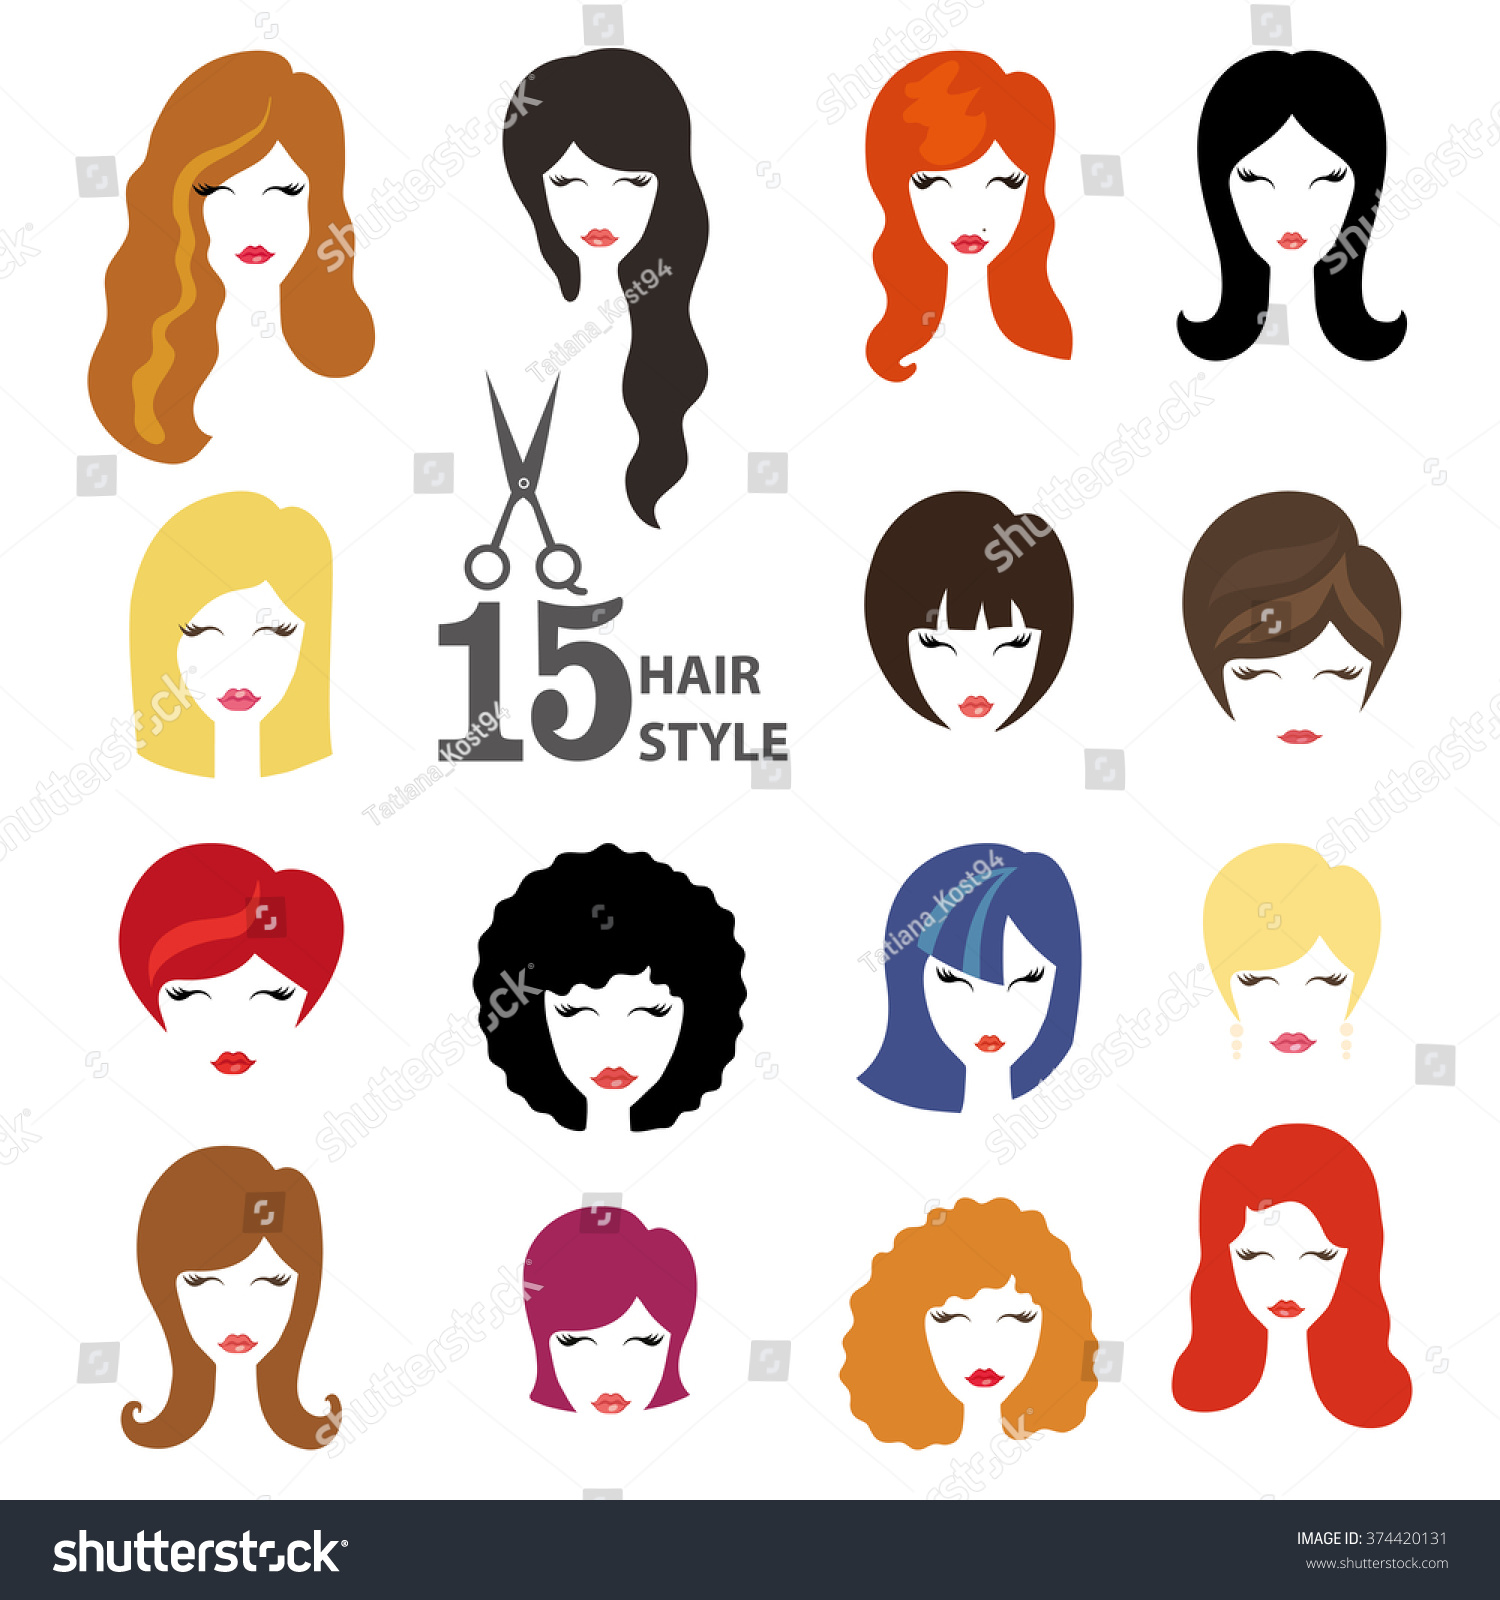 Hairstyle Silhouette Womangirlfemale Hairface Beauty Vectorflat